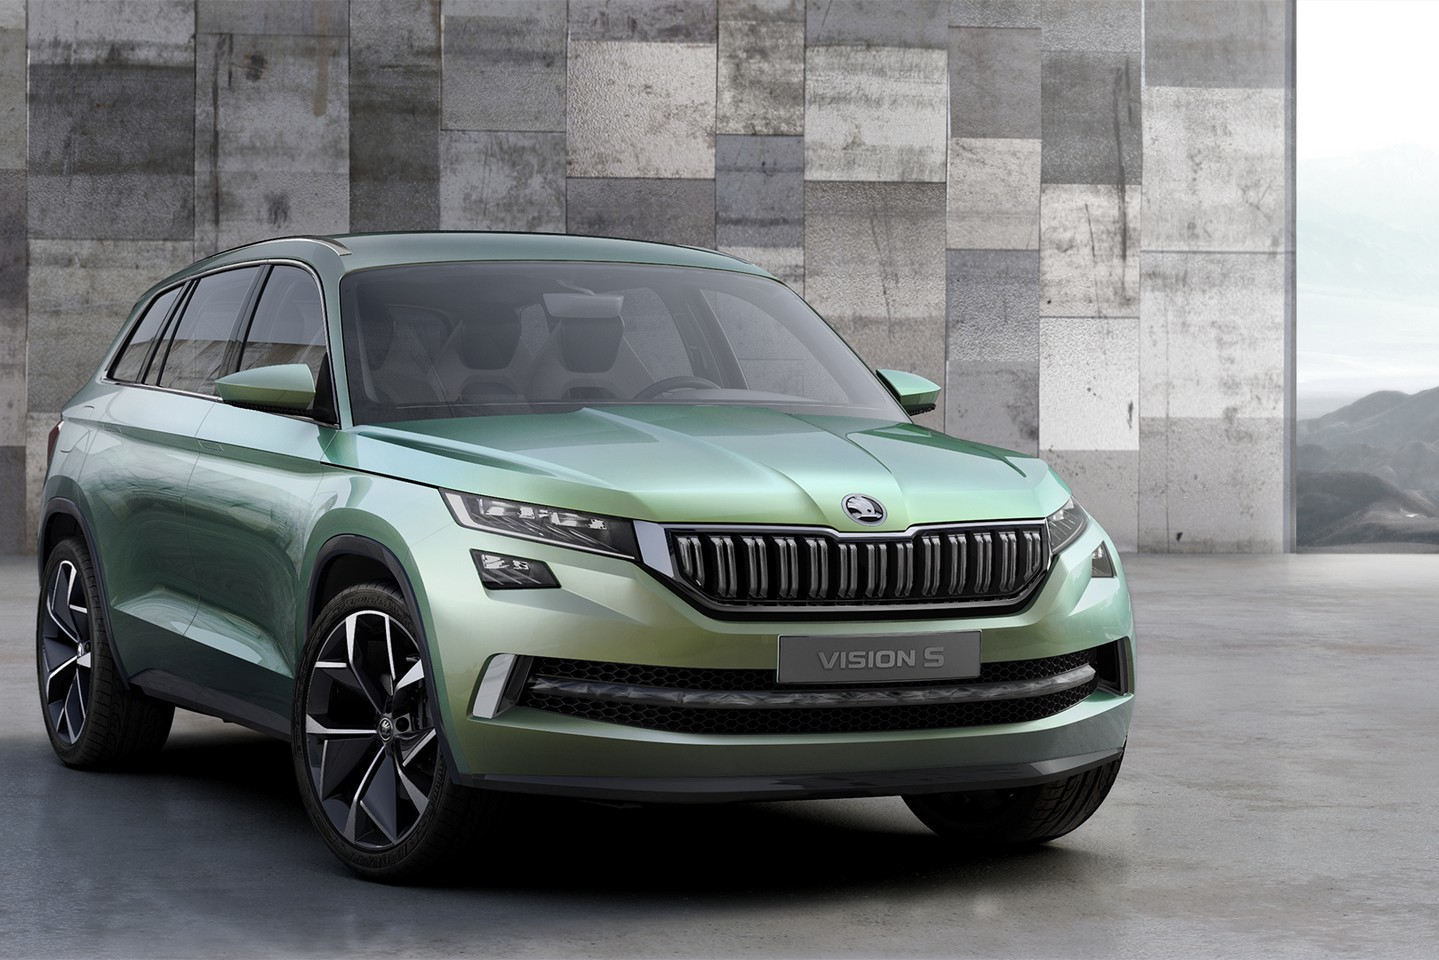 skoda visions concept previews 7 seater kodiak suv at geneva 2016 autoevolution. Black Bedroom Furniture Sets. Home Design Ideas